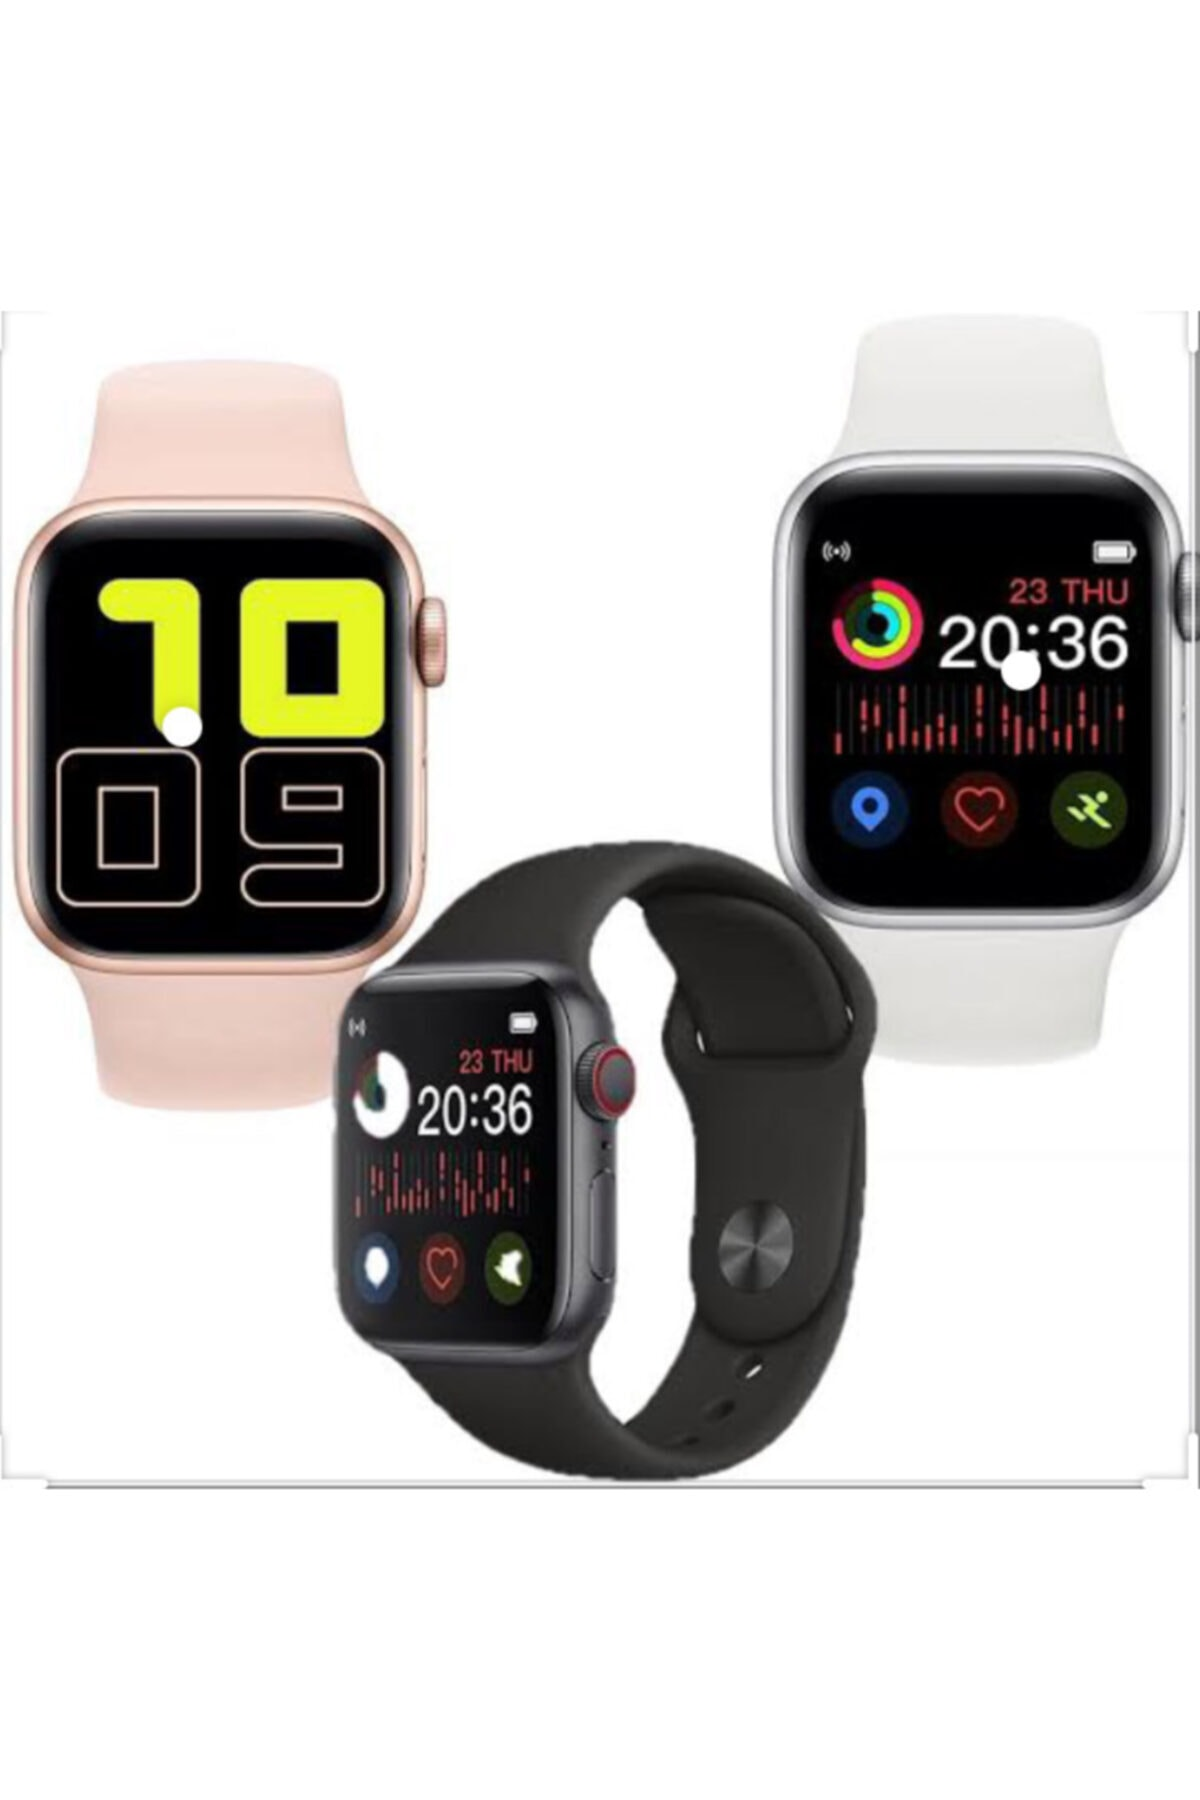 Fulltech Apple Watch5 T500 Serıes Fsw-3 1